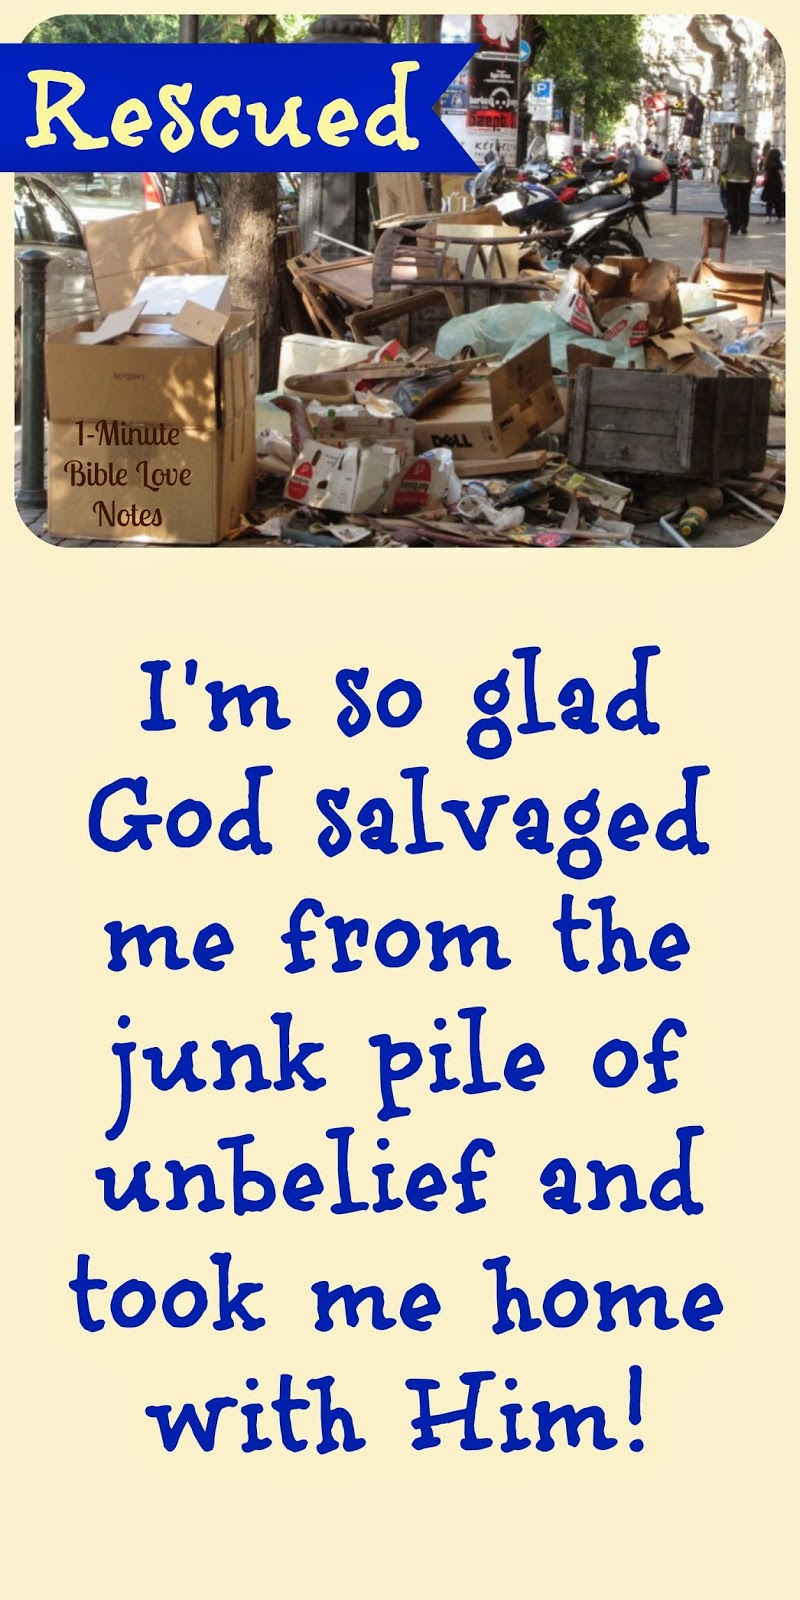 Christ saved us from the junk pile, saved by Jesus, re-purposed people